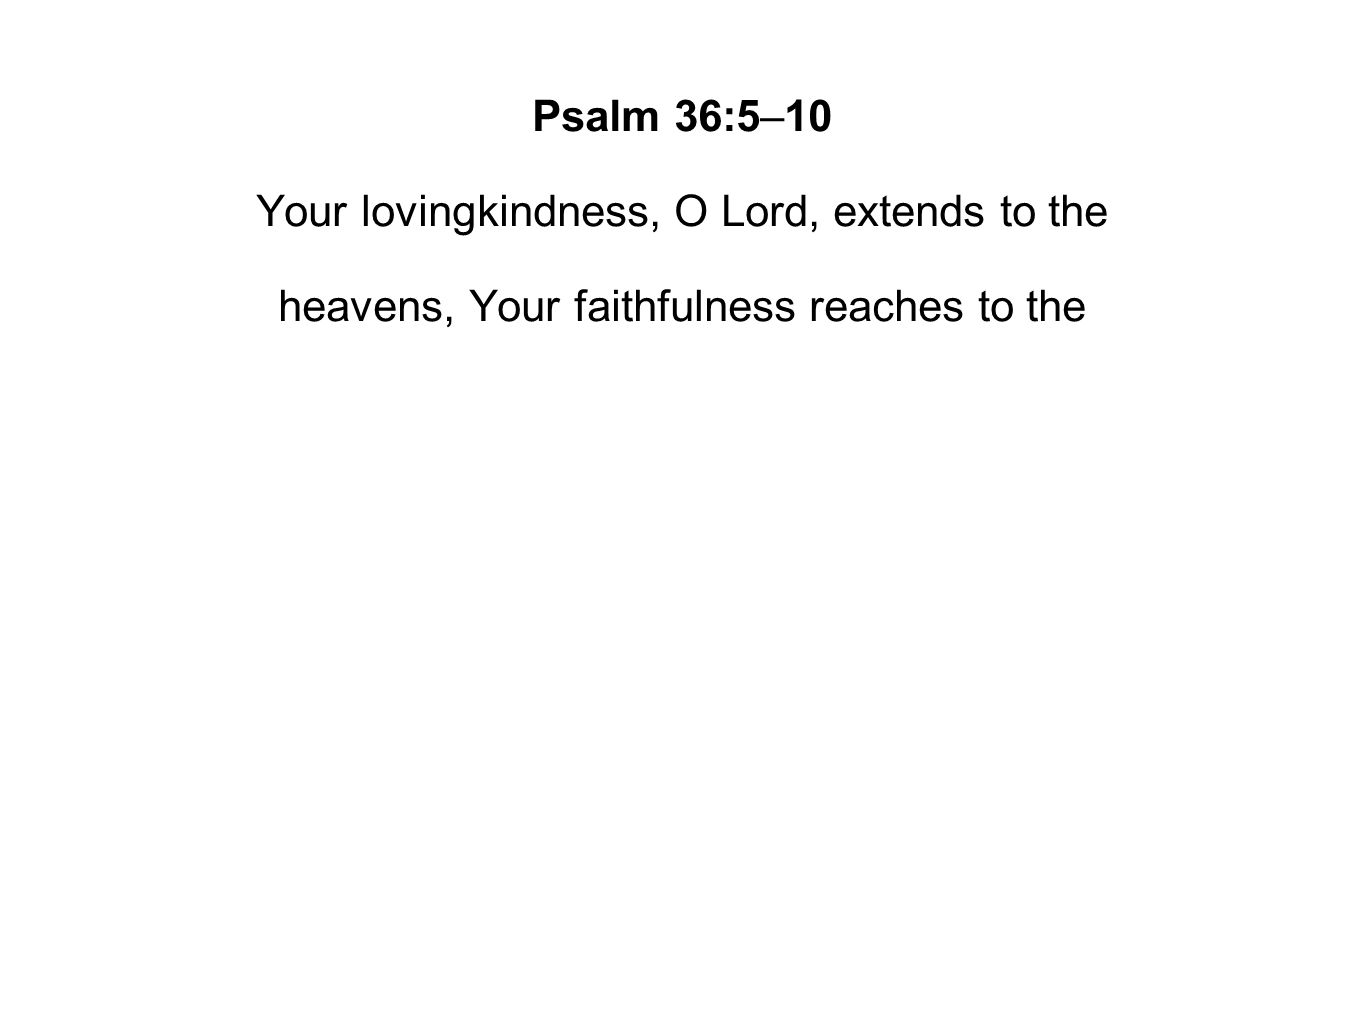 Psalm 36:5–10 Your lovingkindness, O Lord, extends to the heavens, Your faithfulness reaches to the